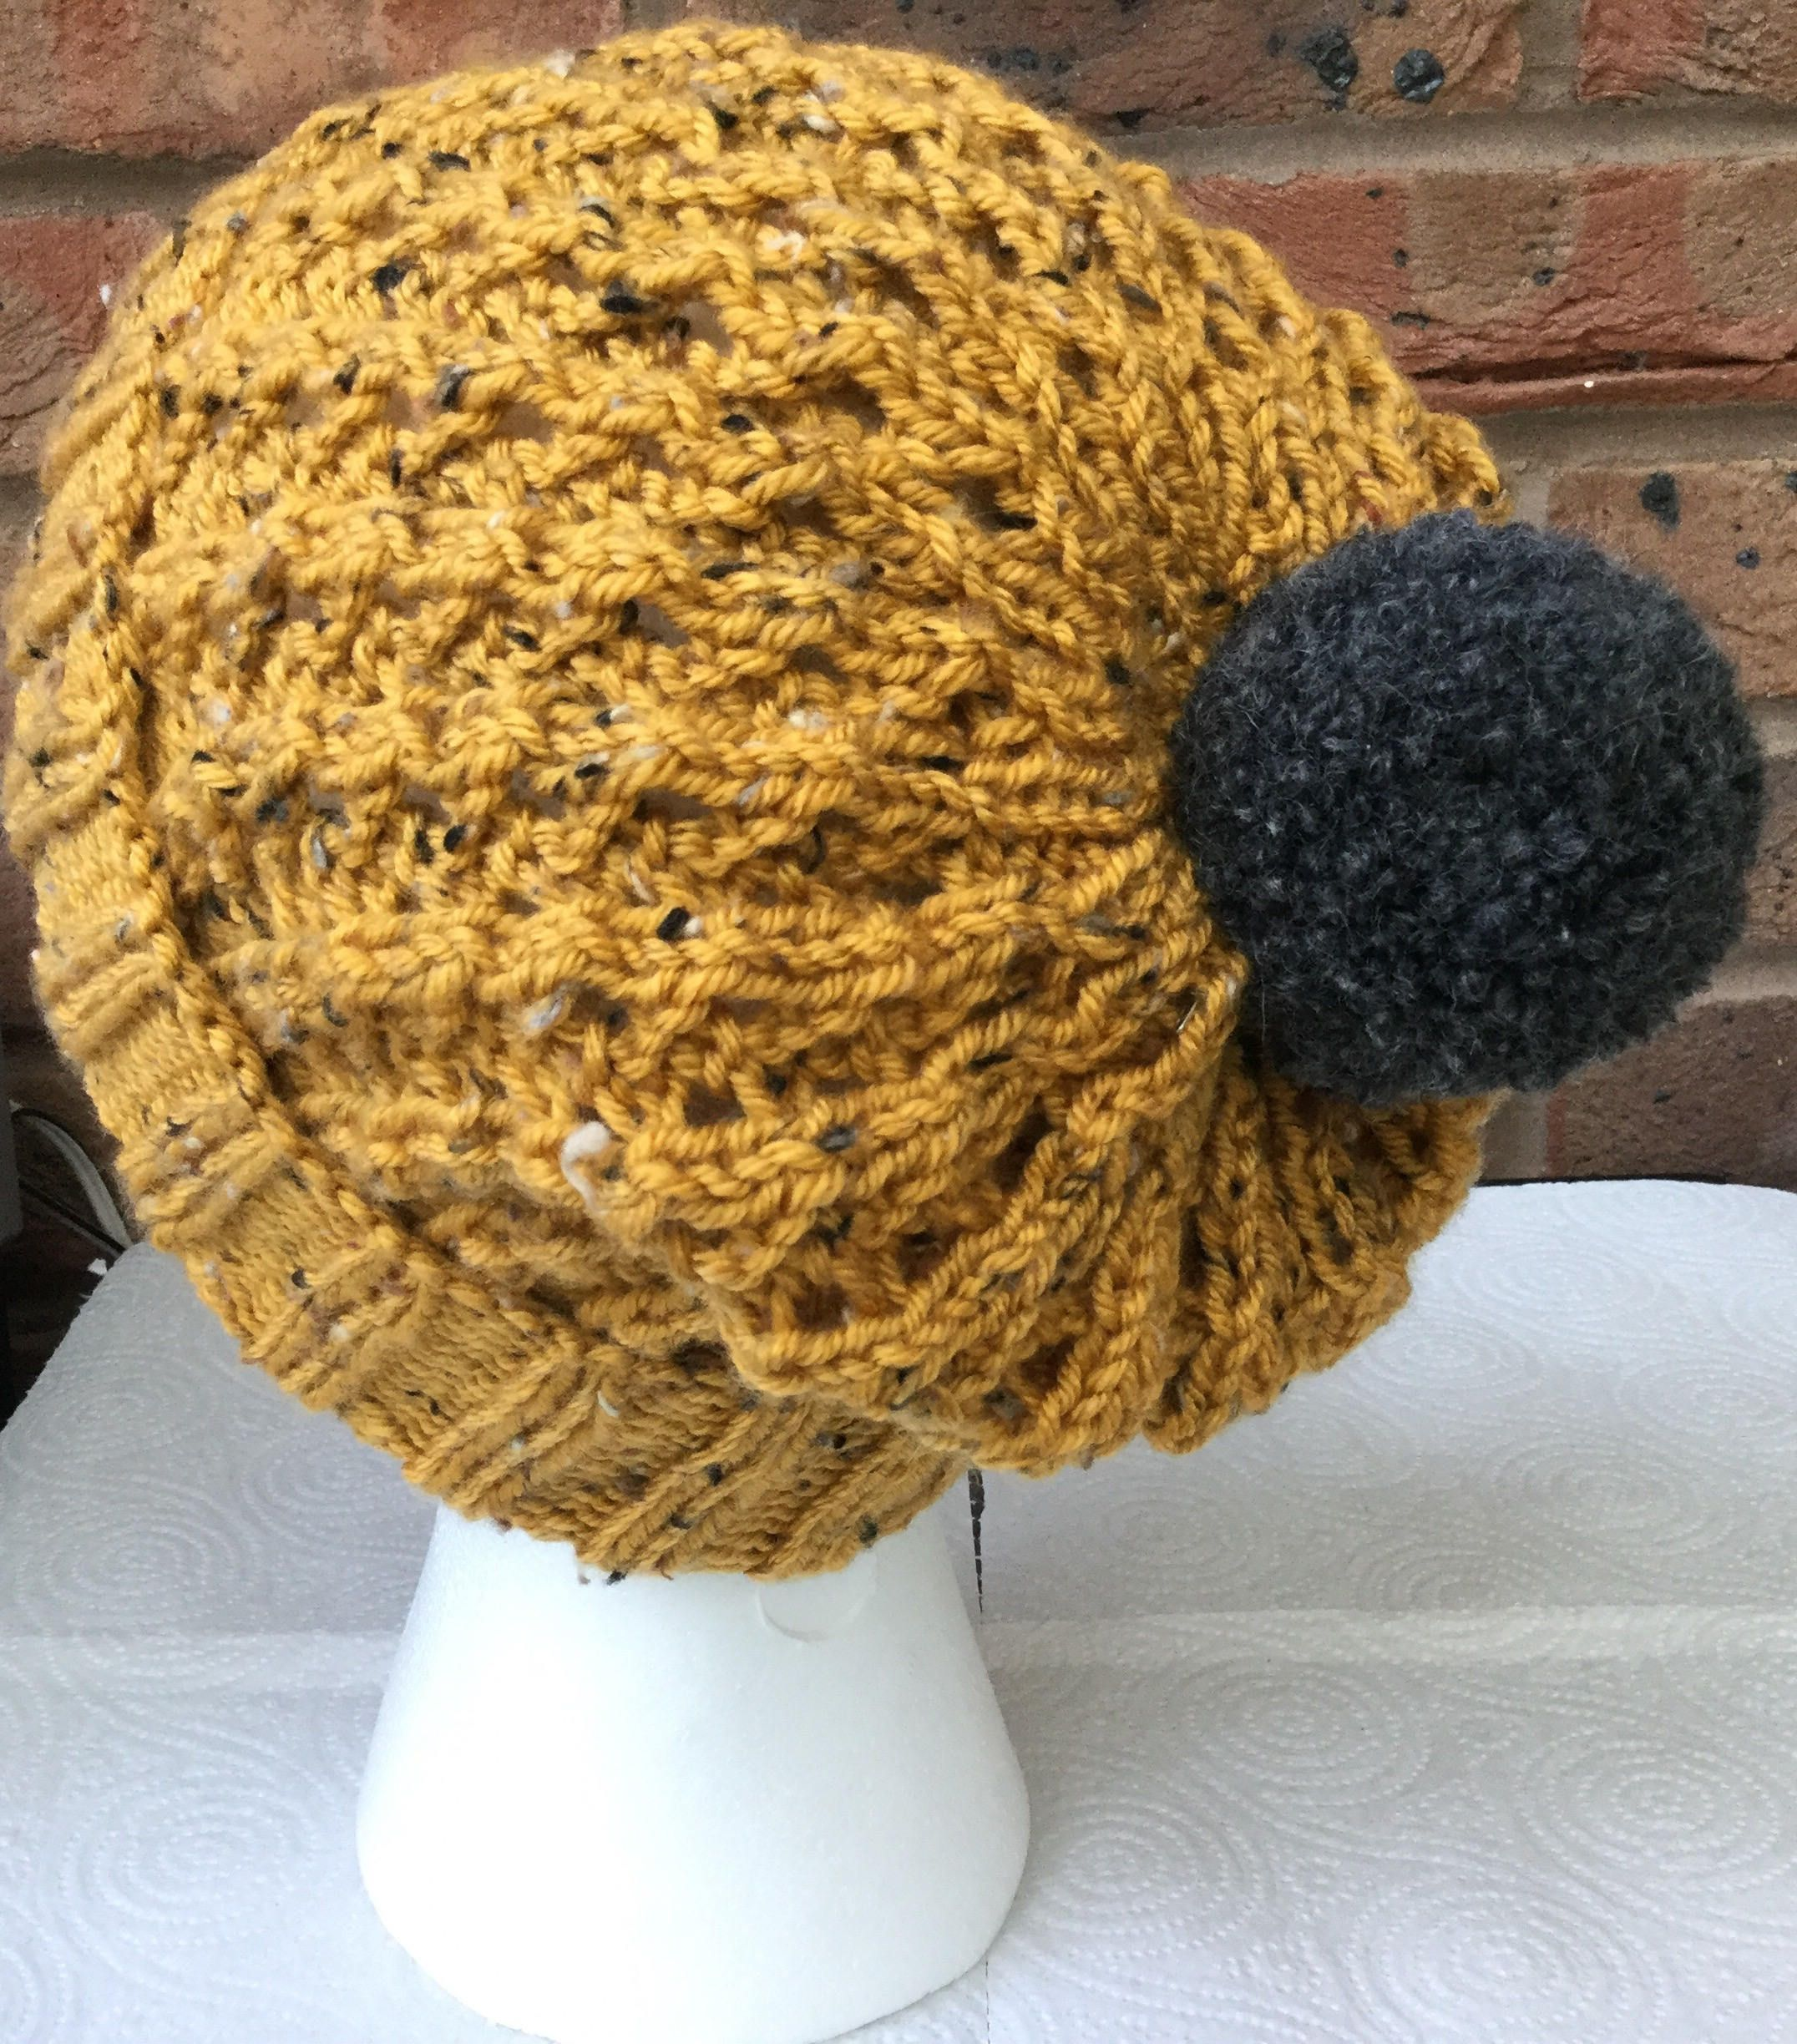 6c44c3b5282 Hand Knit Ribbed Lace Slouch Hat In Mustard Tweed Yarn by  HandknitHatsByAuntyM on Etsy